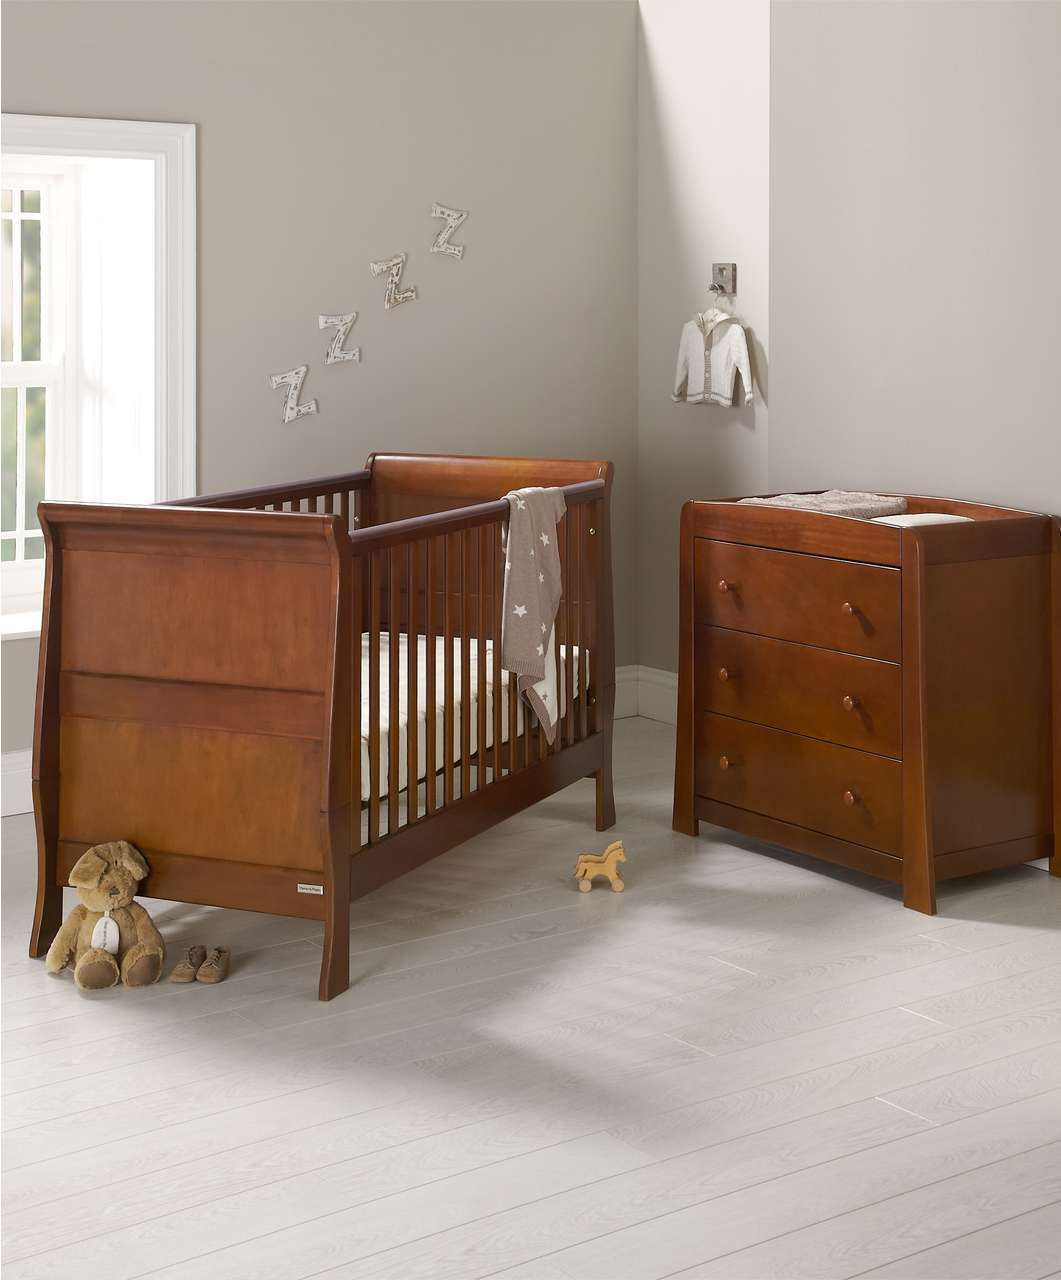 Mia 2 Piece Set Walnut 2 Piece Sets Mamas Papas Avec Images